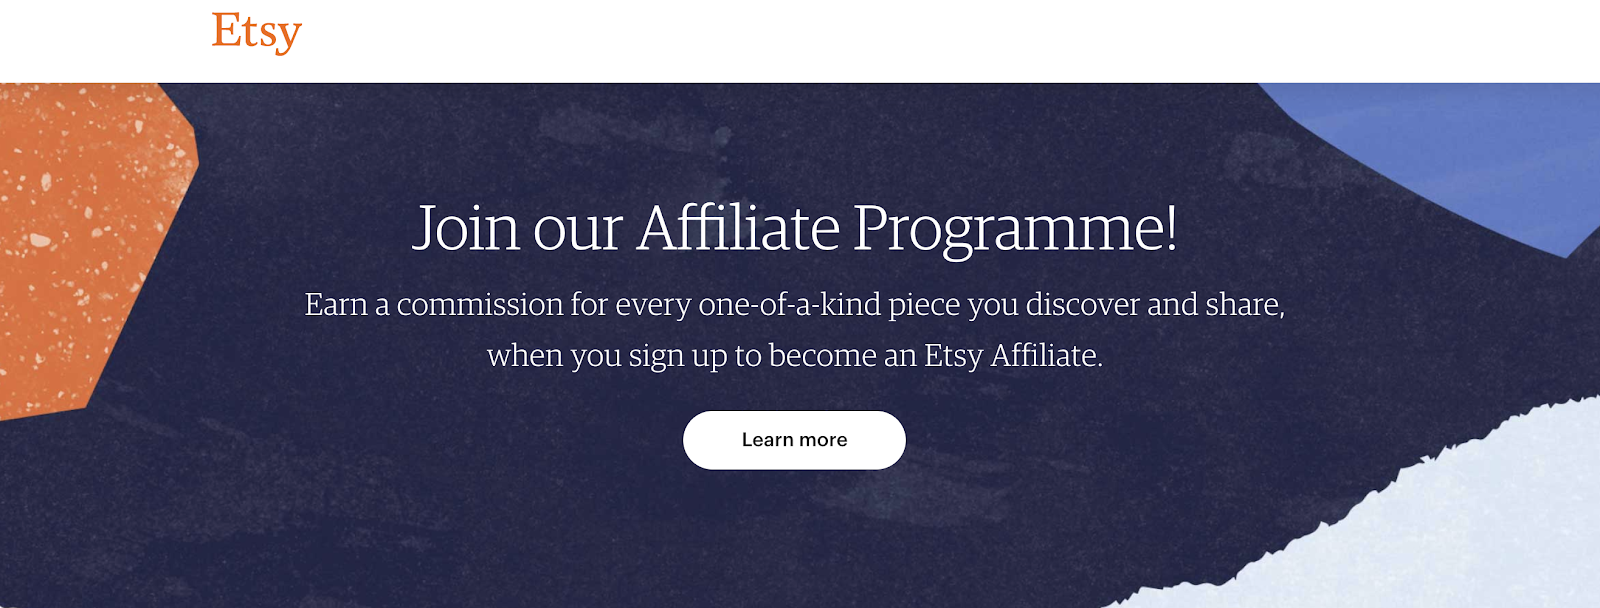 Etsy's Affiliate Program Landing Page (Screenshot)